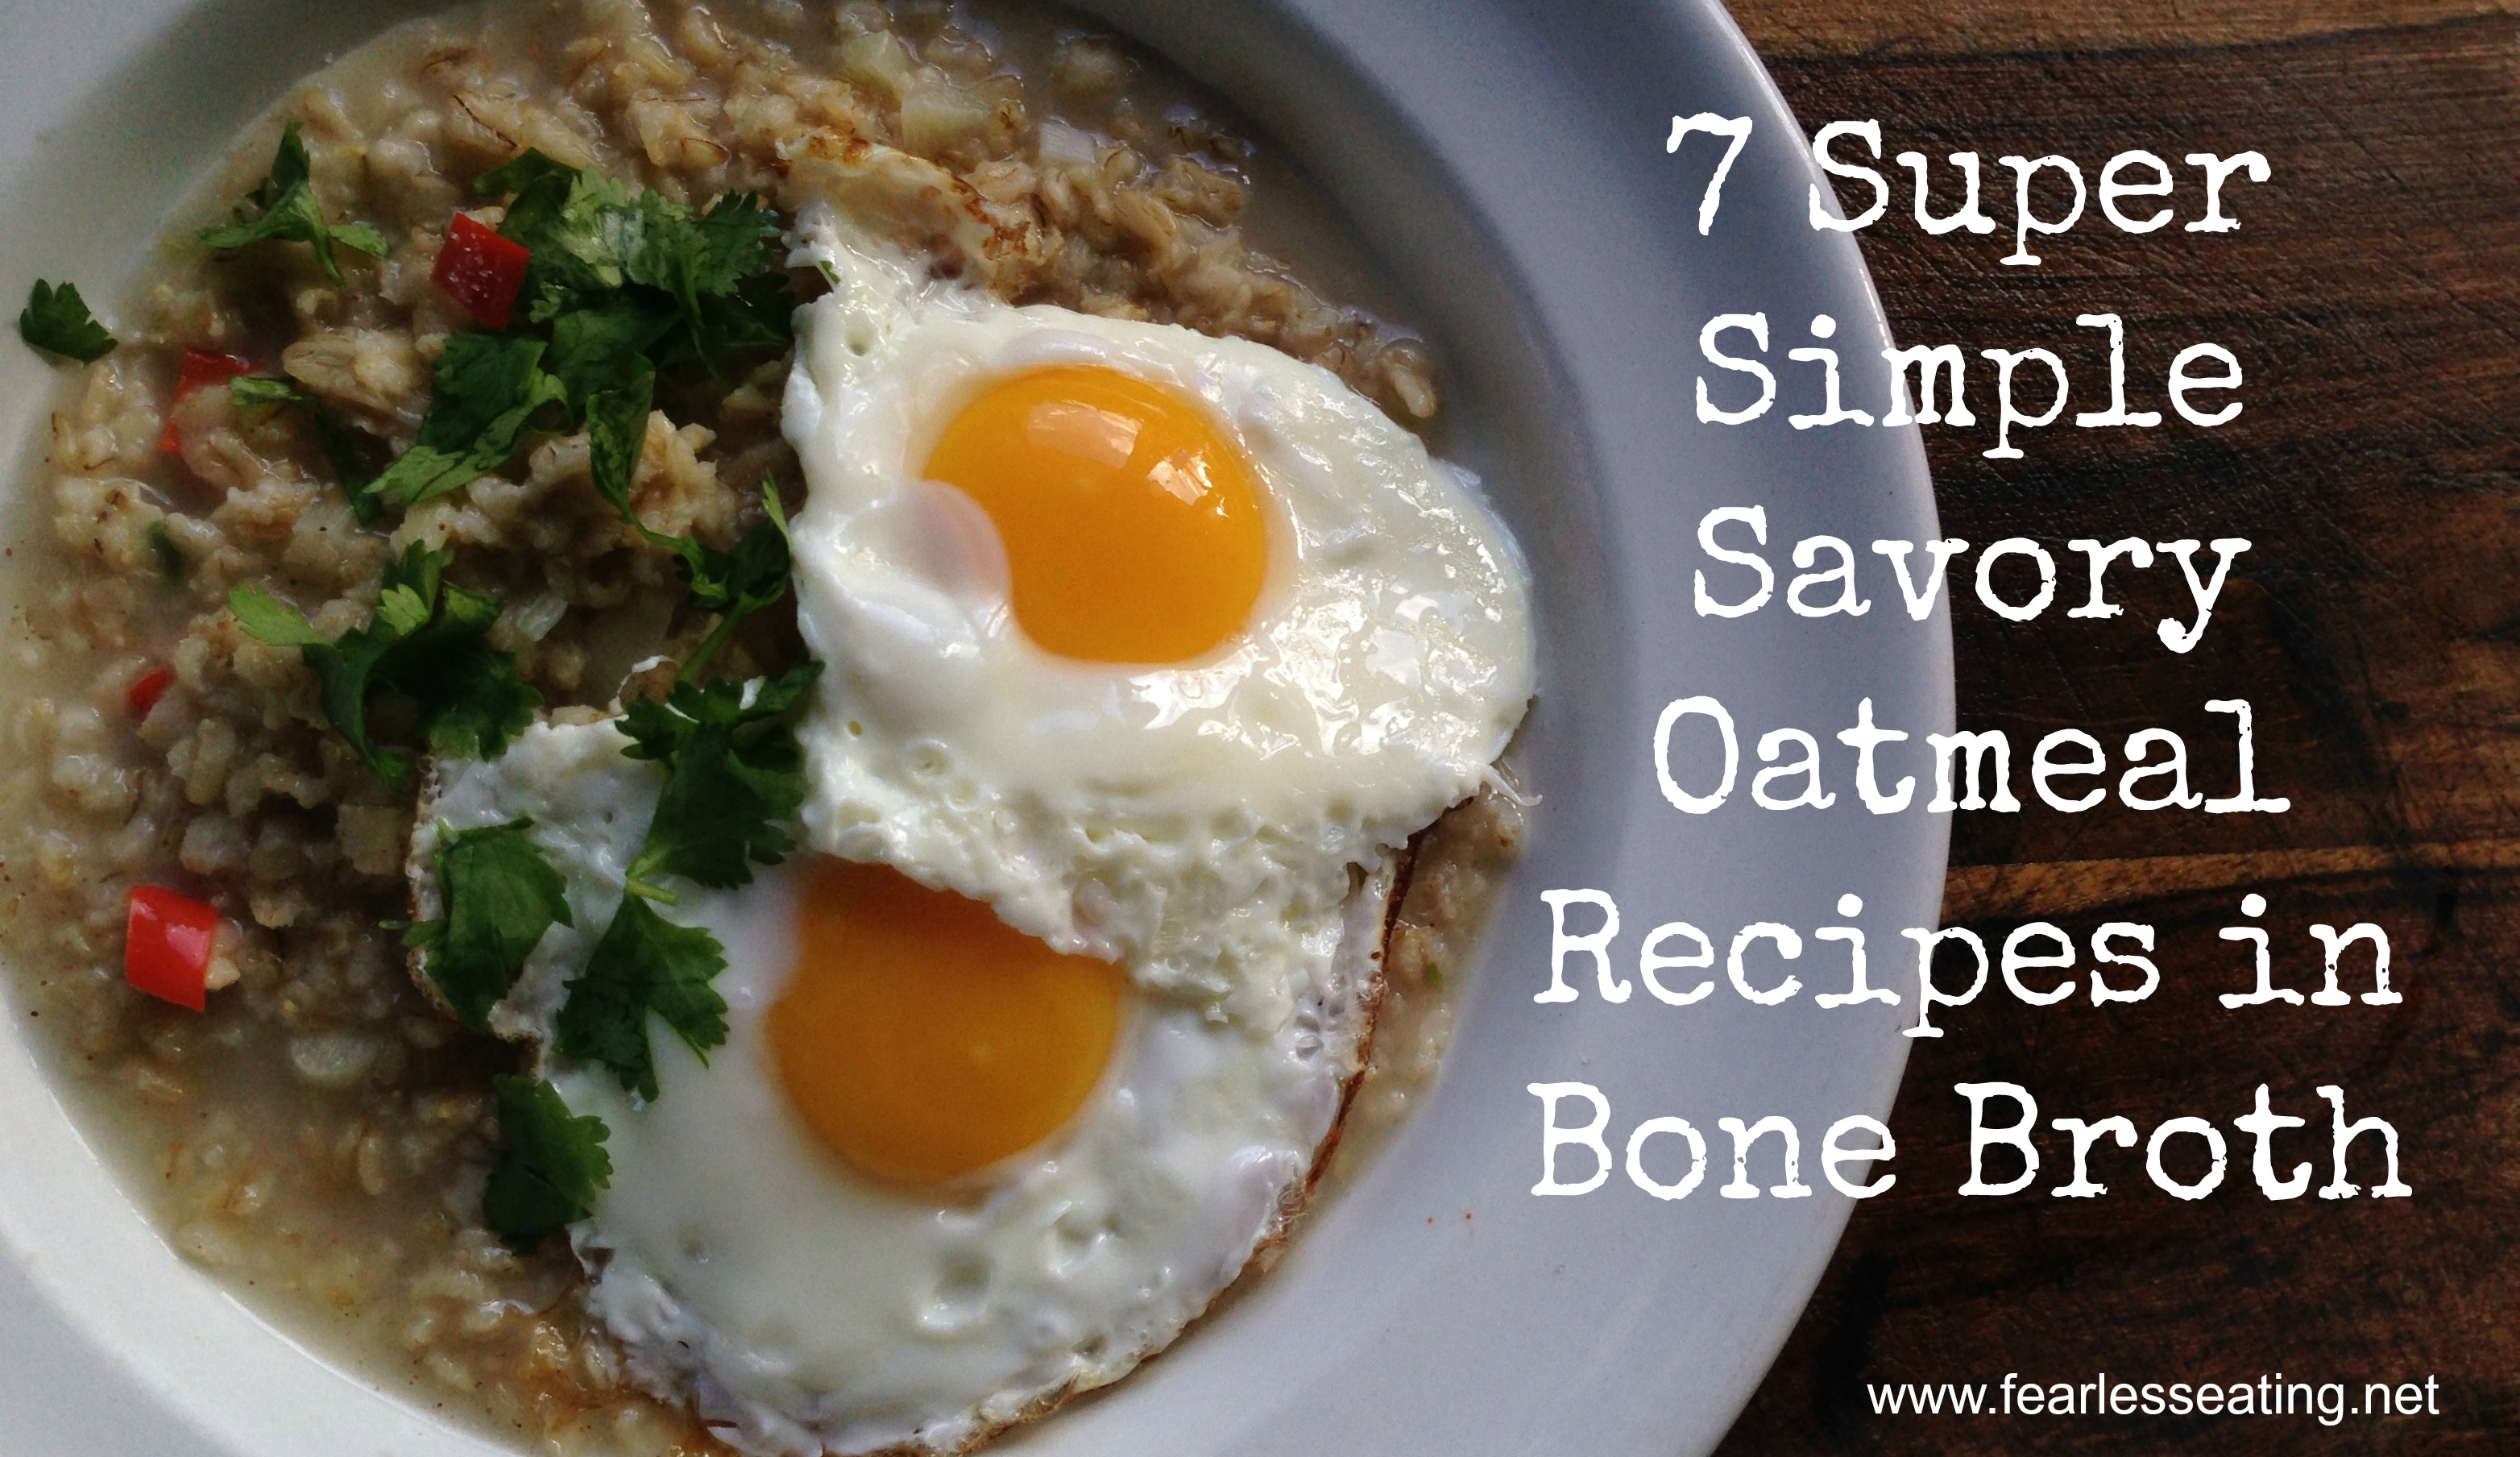 recipe: savory oatmeal with egg recipe [27]